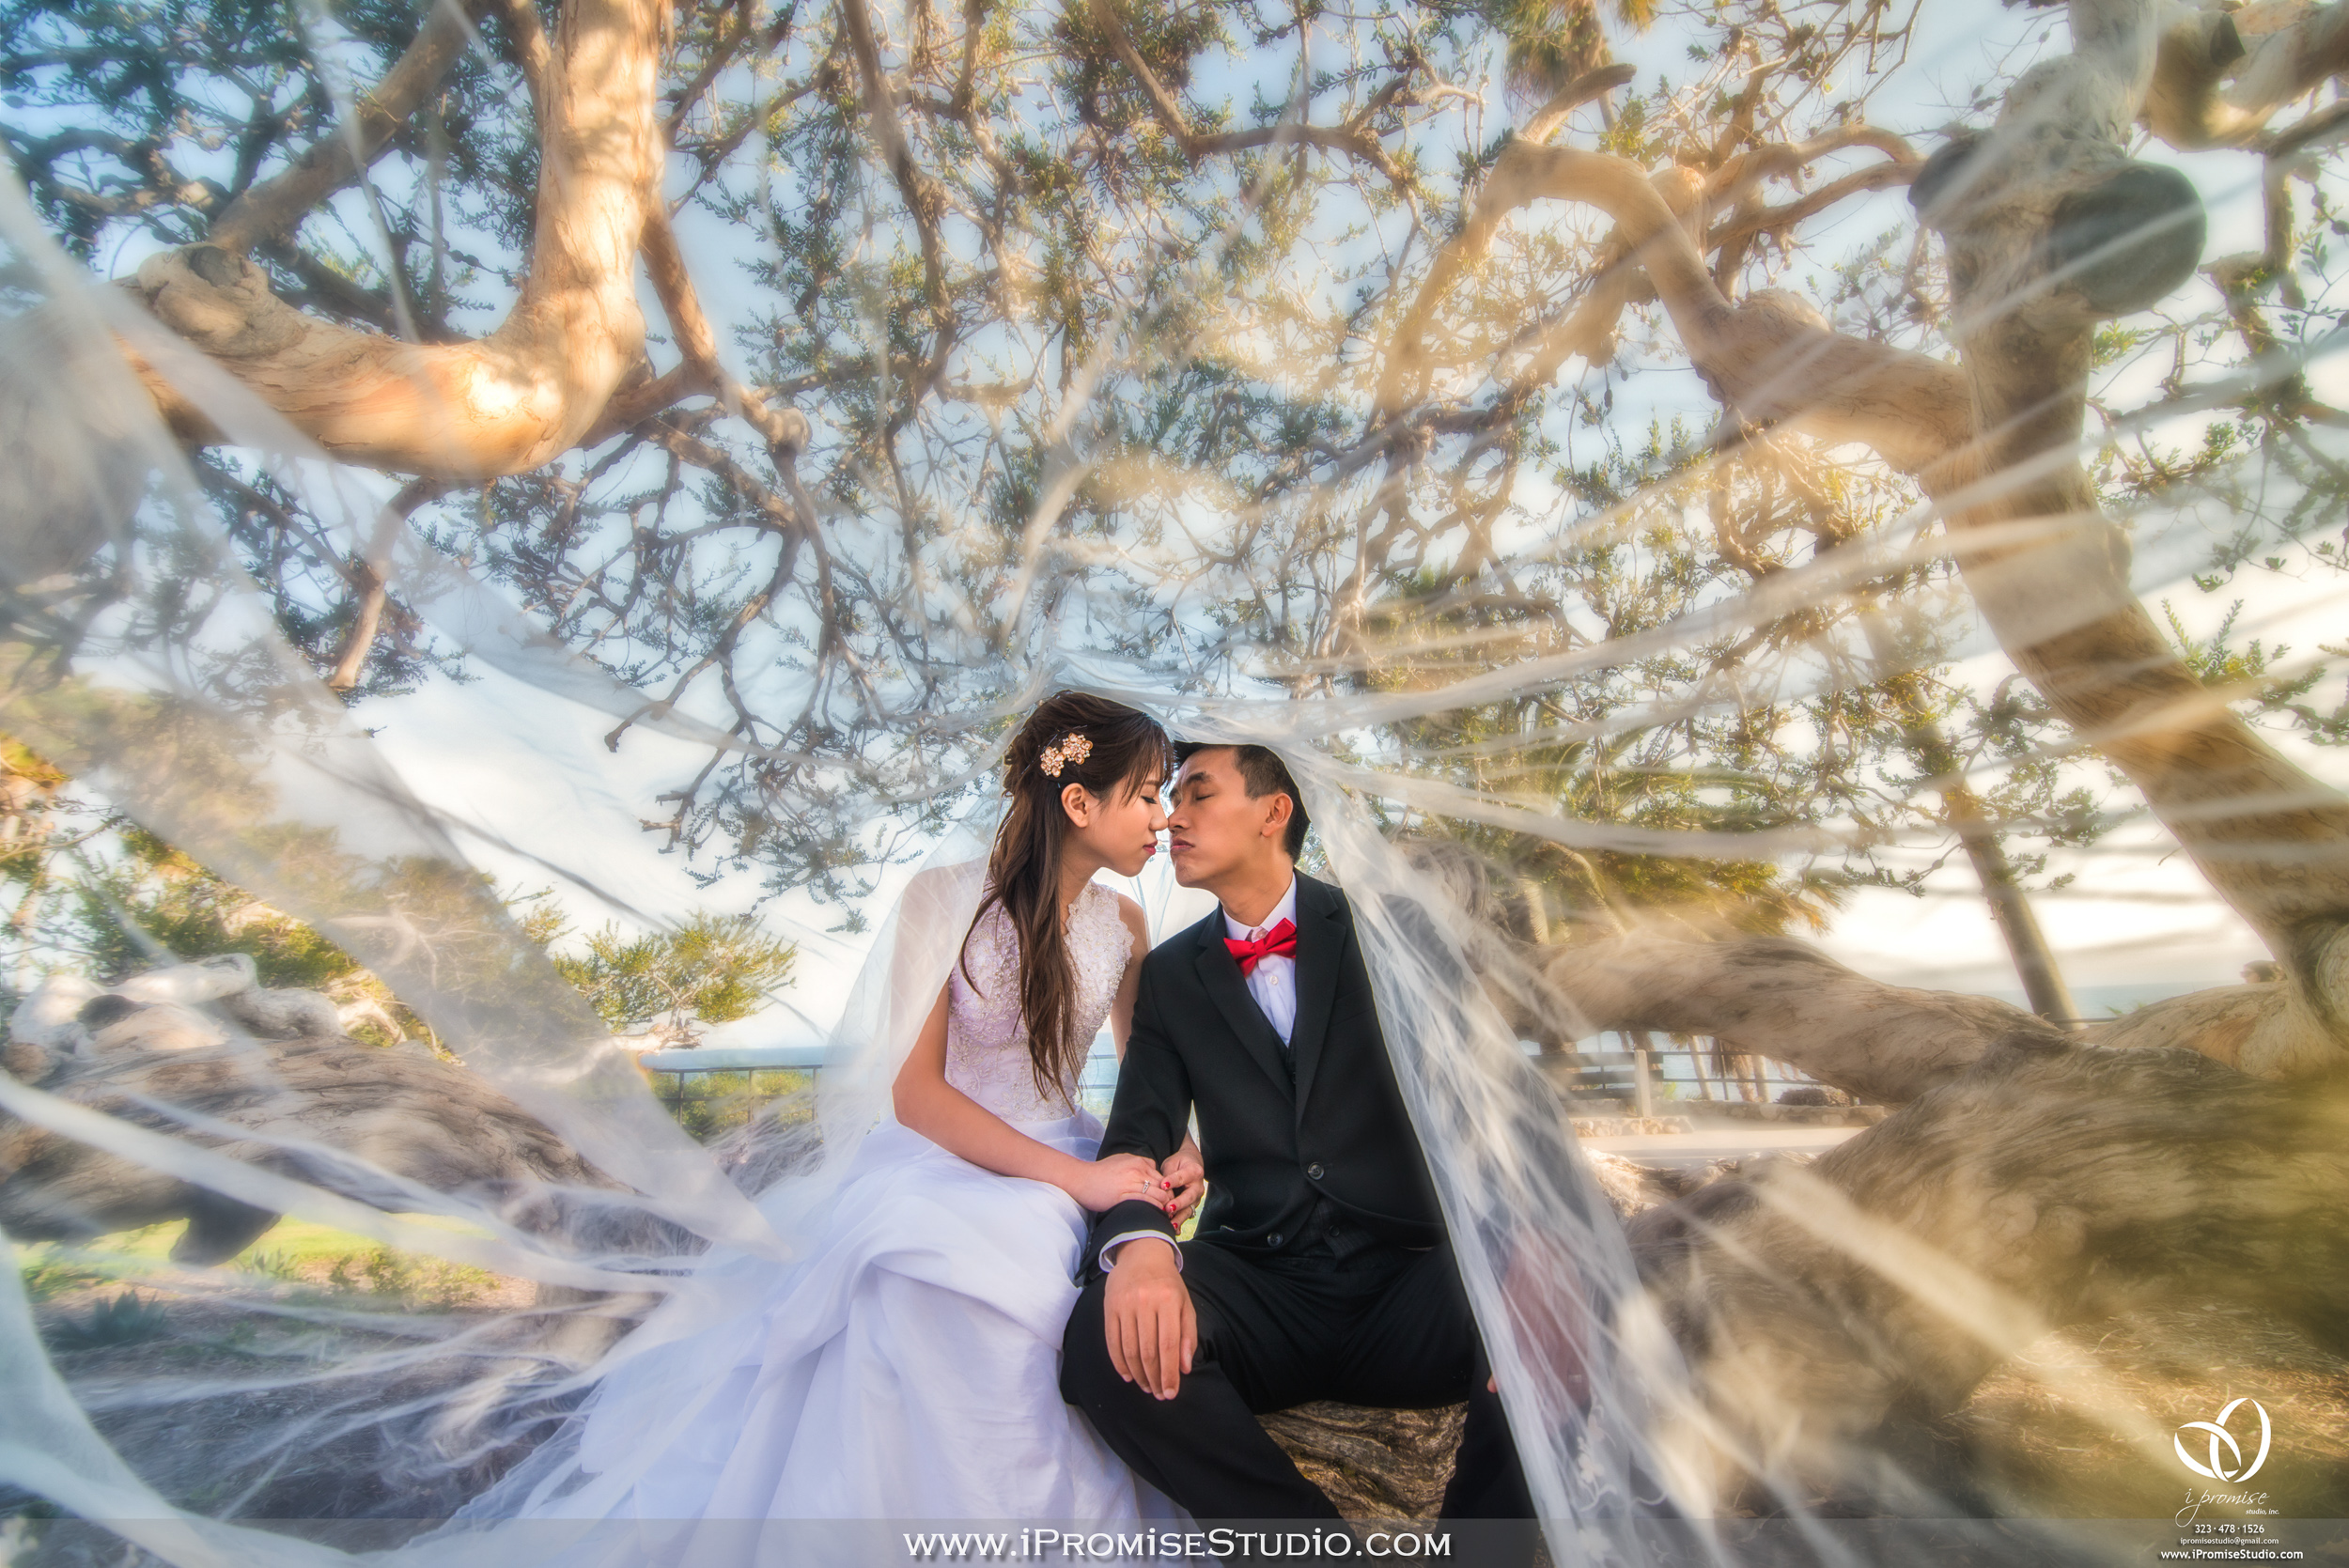 Laguna beach engagement wedding 12.JPG